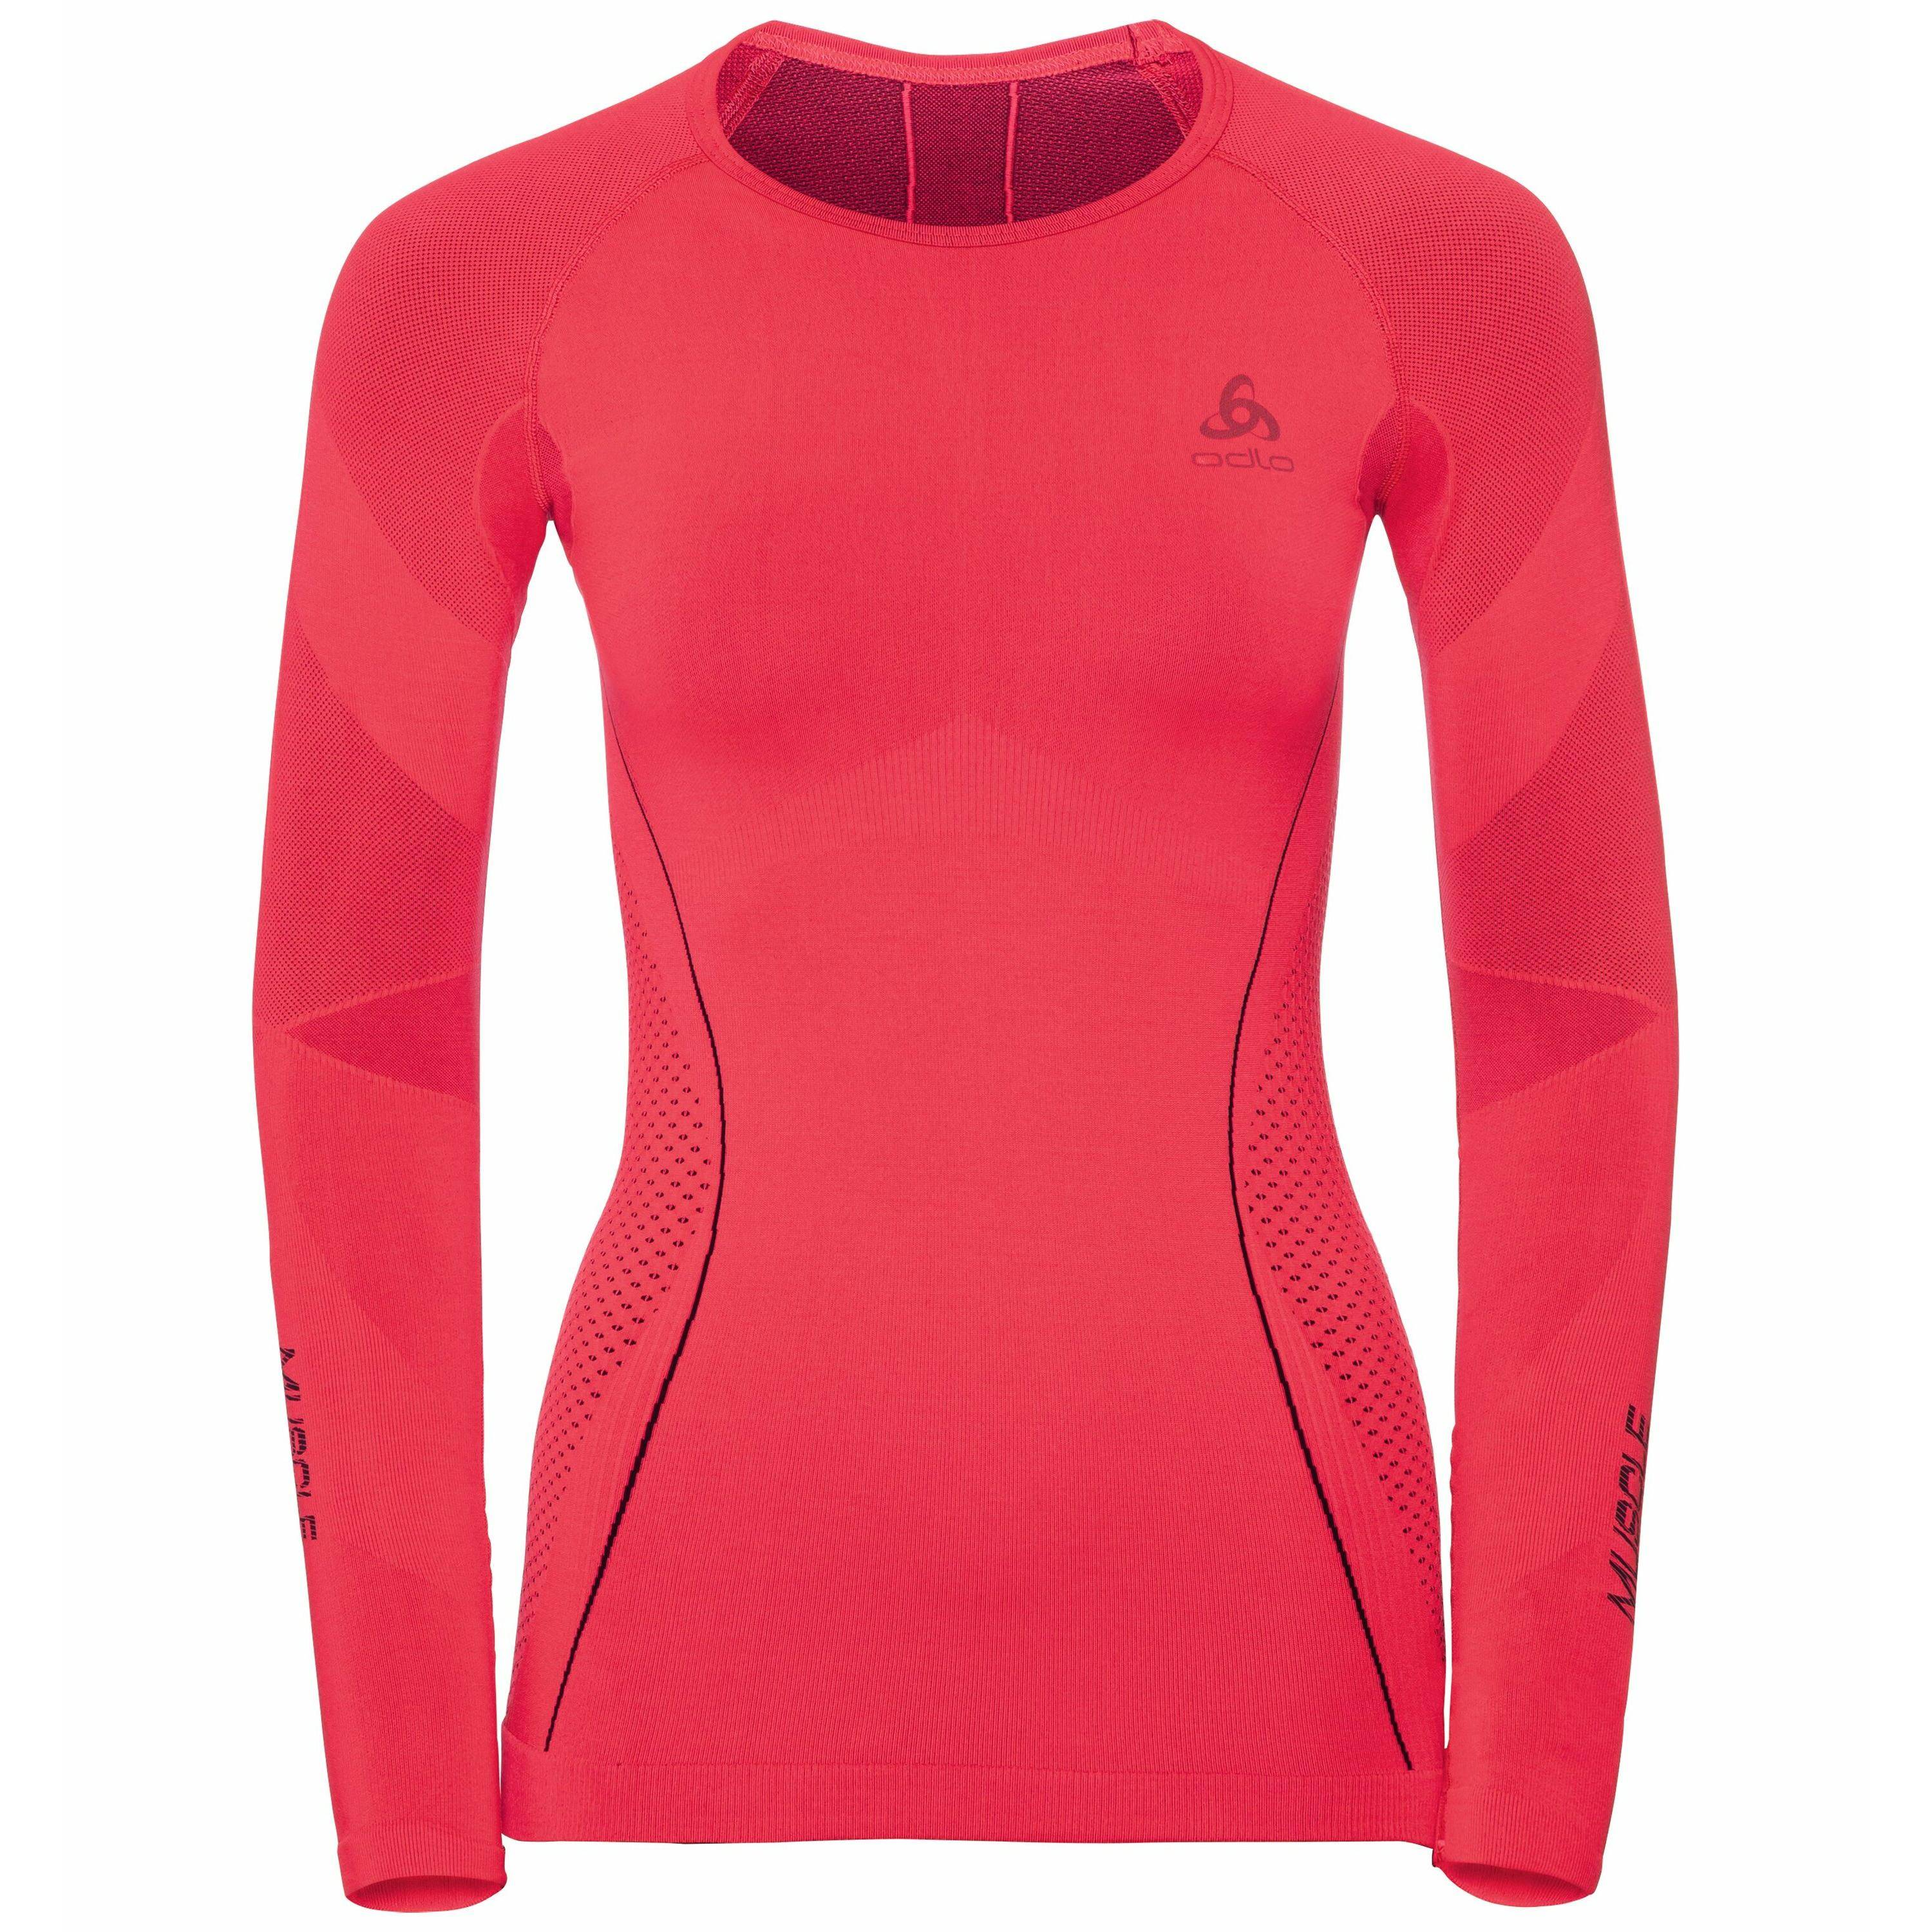 Odlo SVS top col ras du cou manches longues Performance MUSCLE FORCE RUNNING Warm diva pink - odyssey gray taille: XS